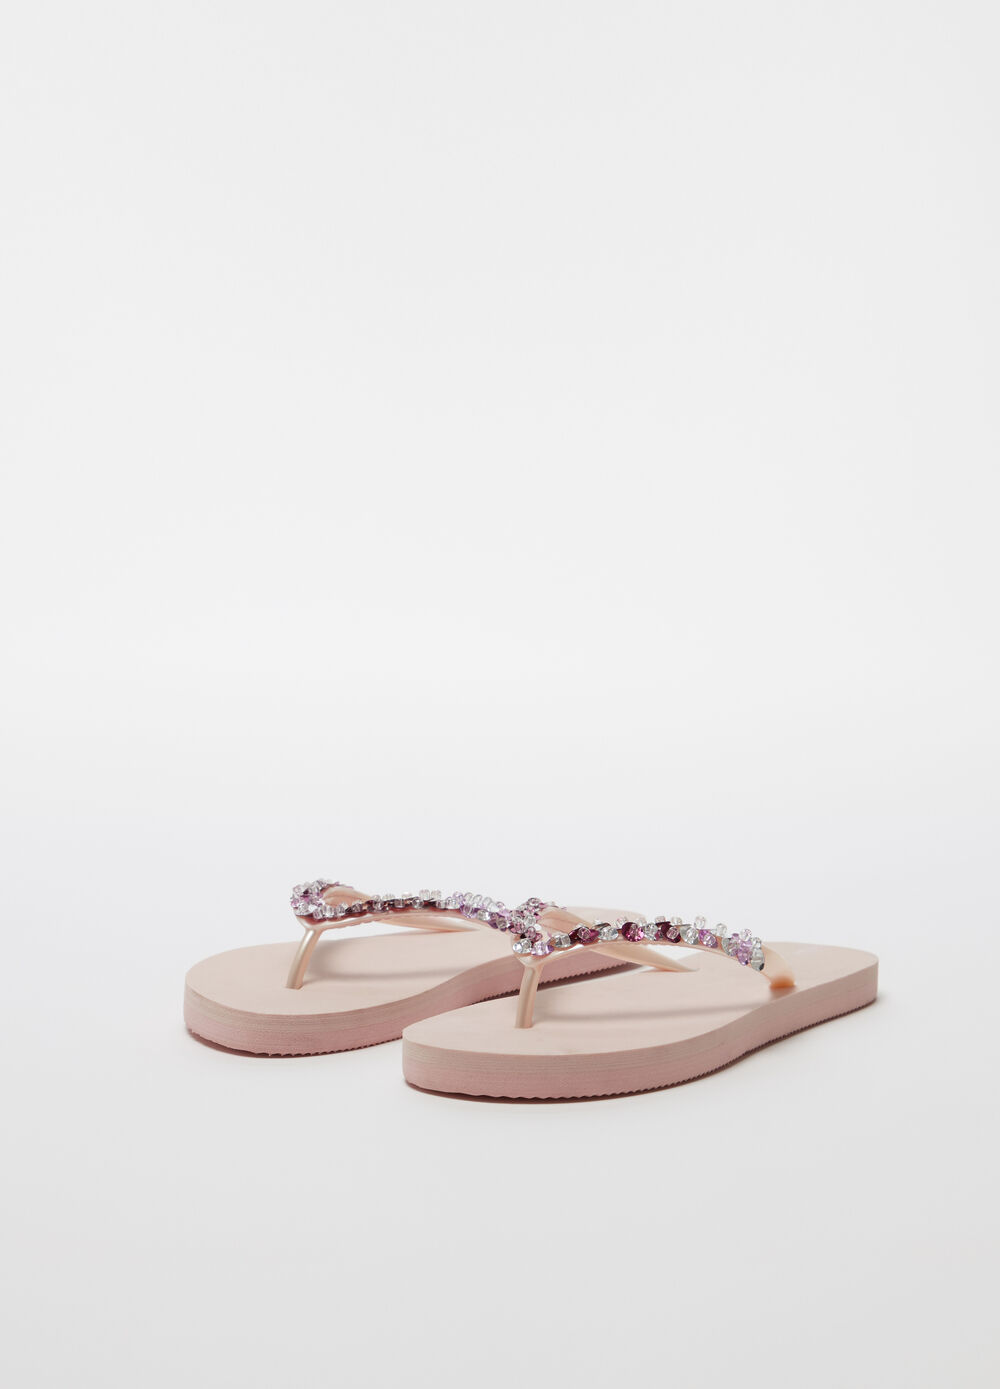 Thong sandals with transparent beads